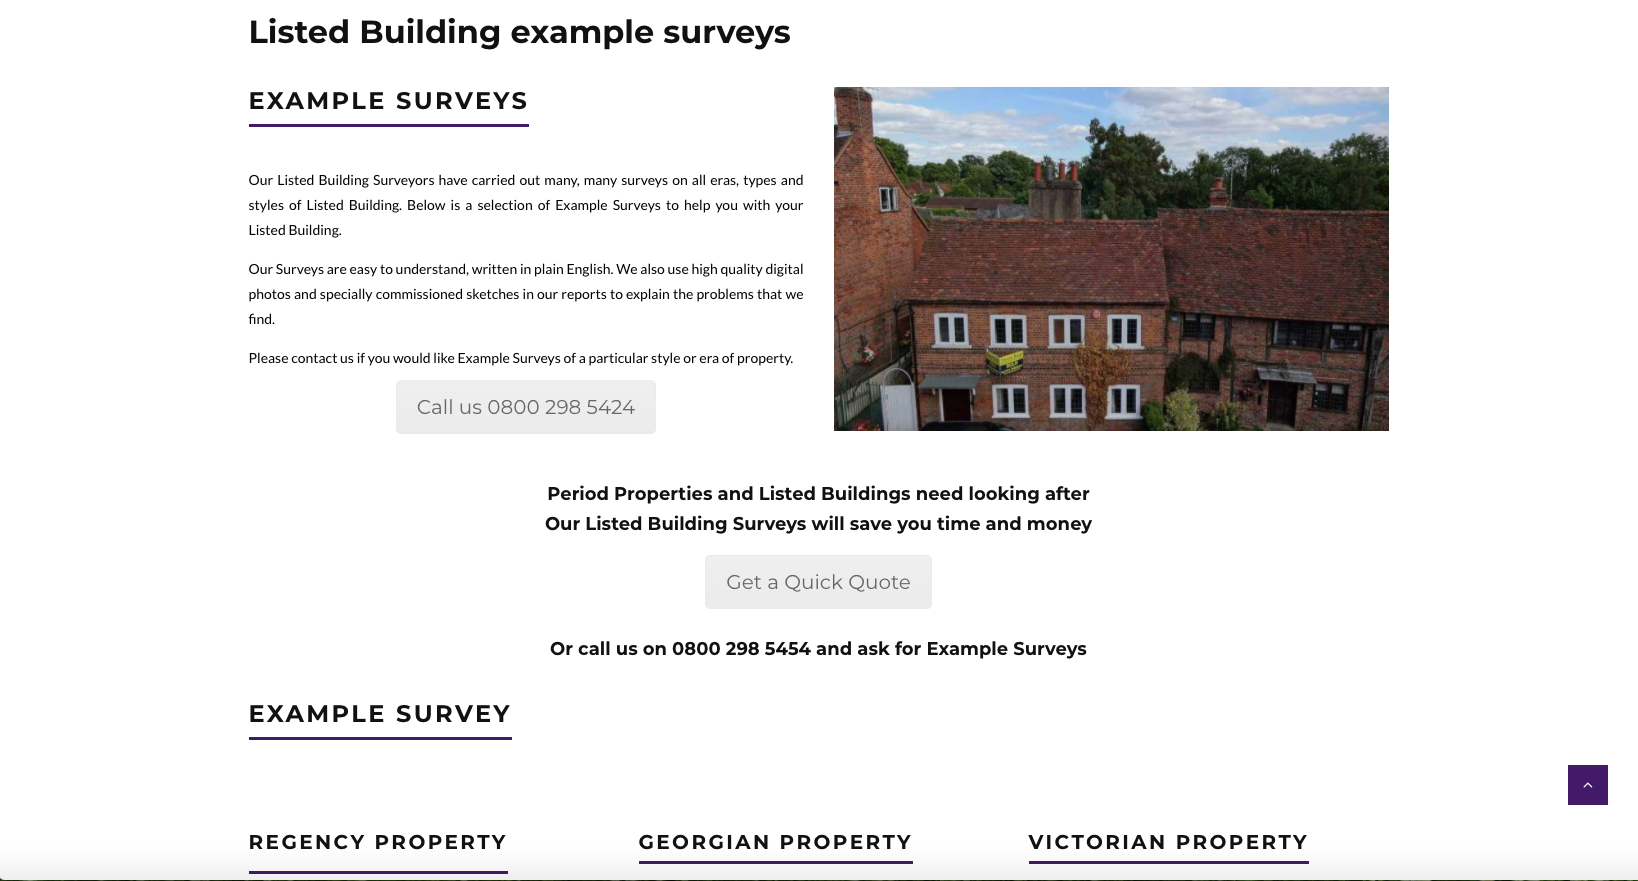 Listed Building Example Surveys